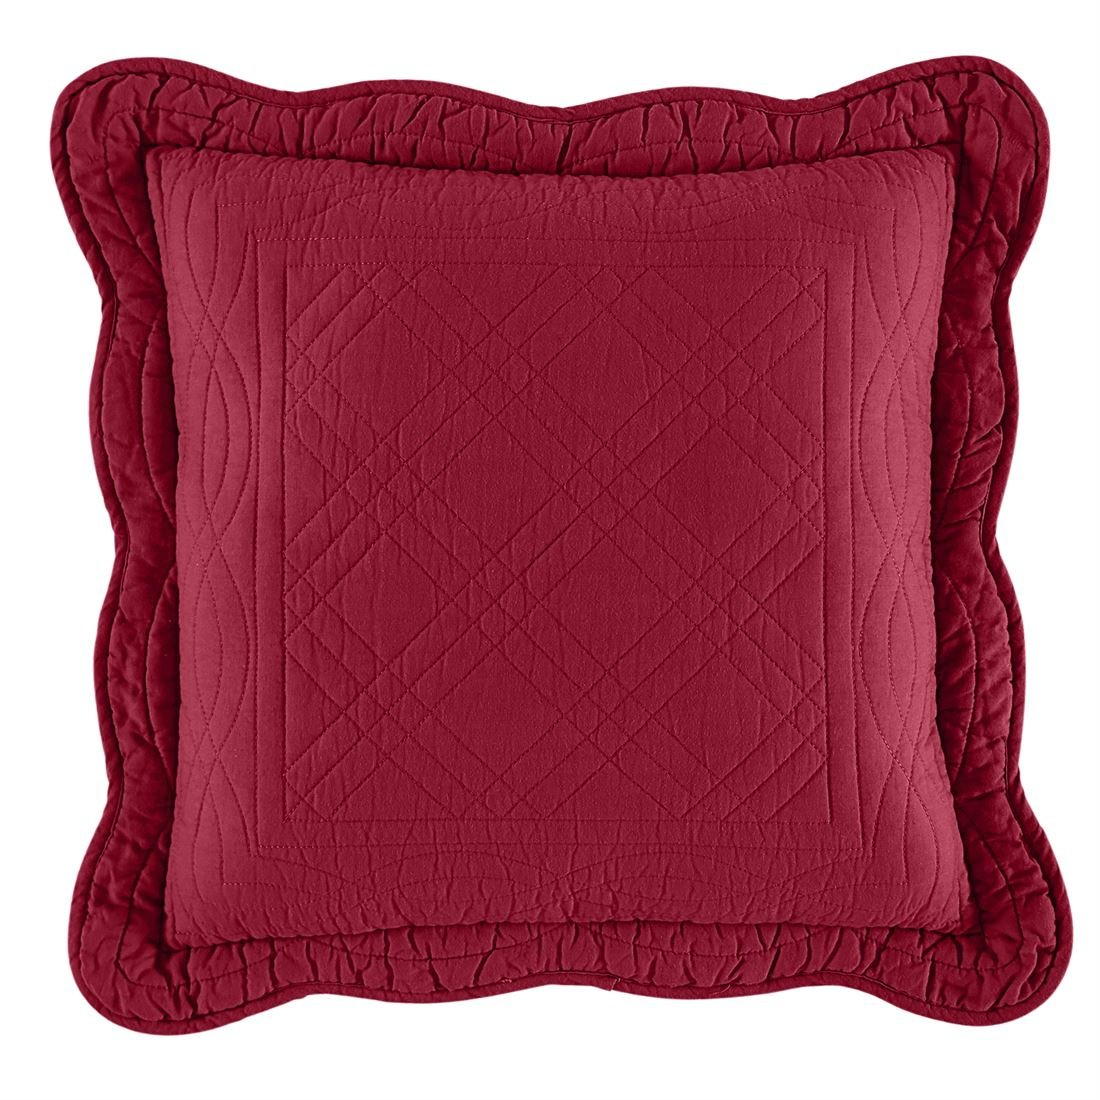 BrylaneHome Florence 16'' Square Pillow (Burgundy,0)